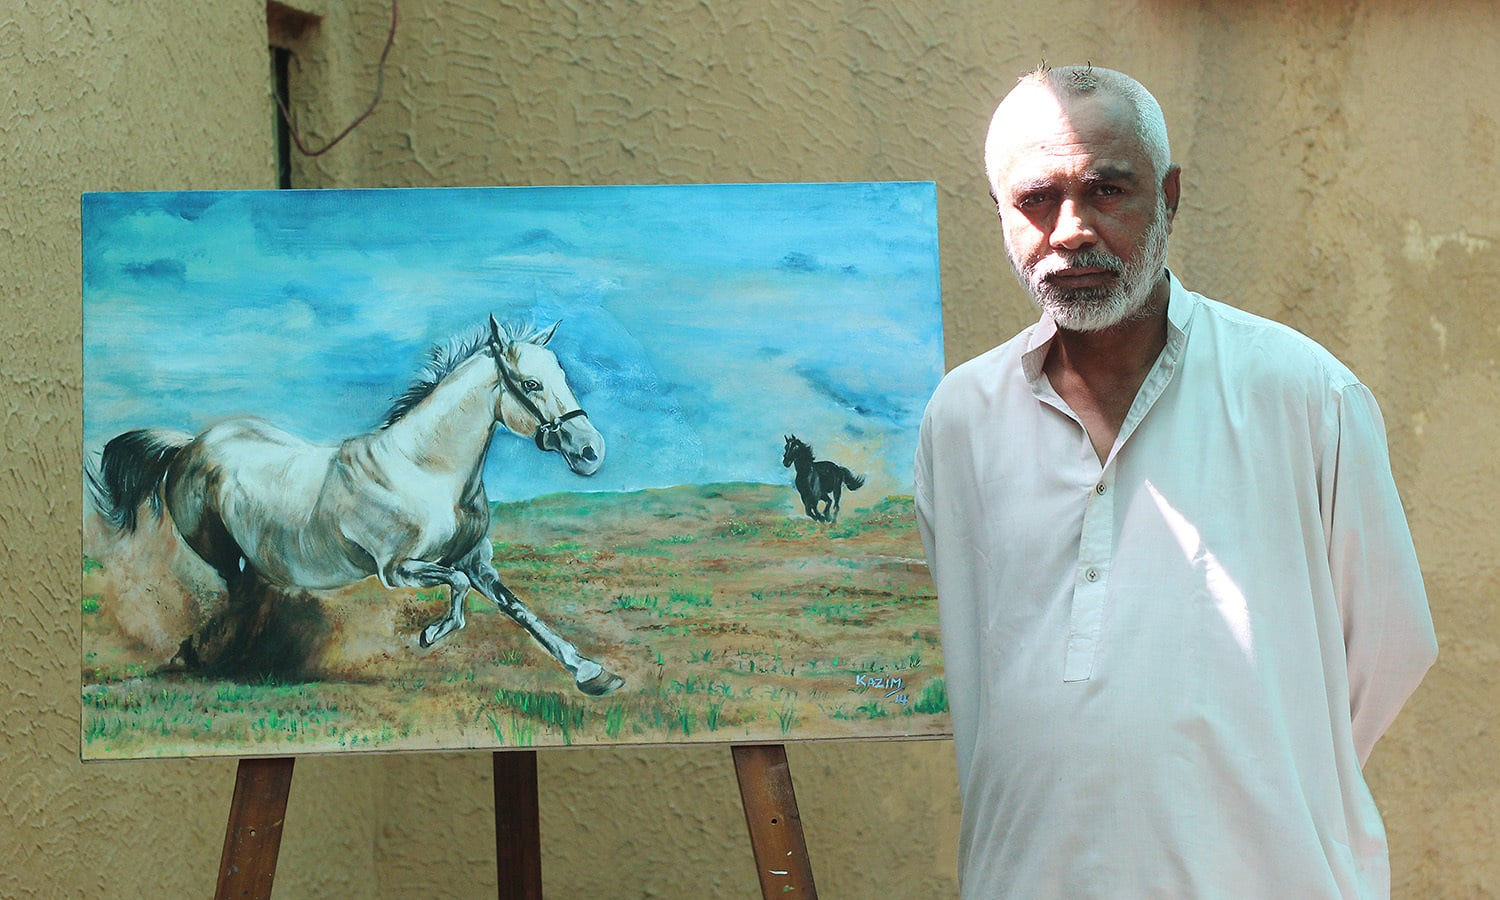 One of the paintings made by Kazim.